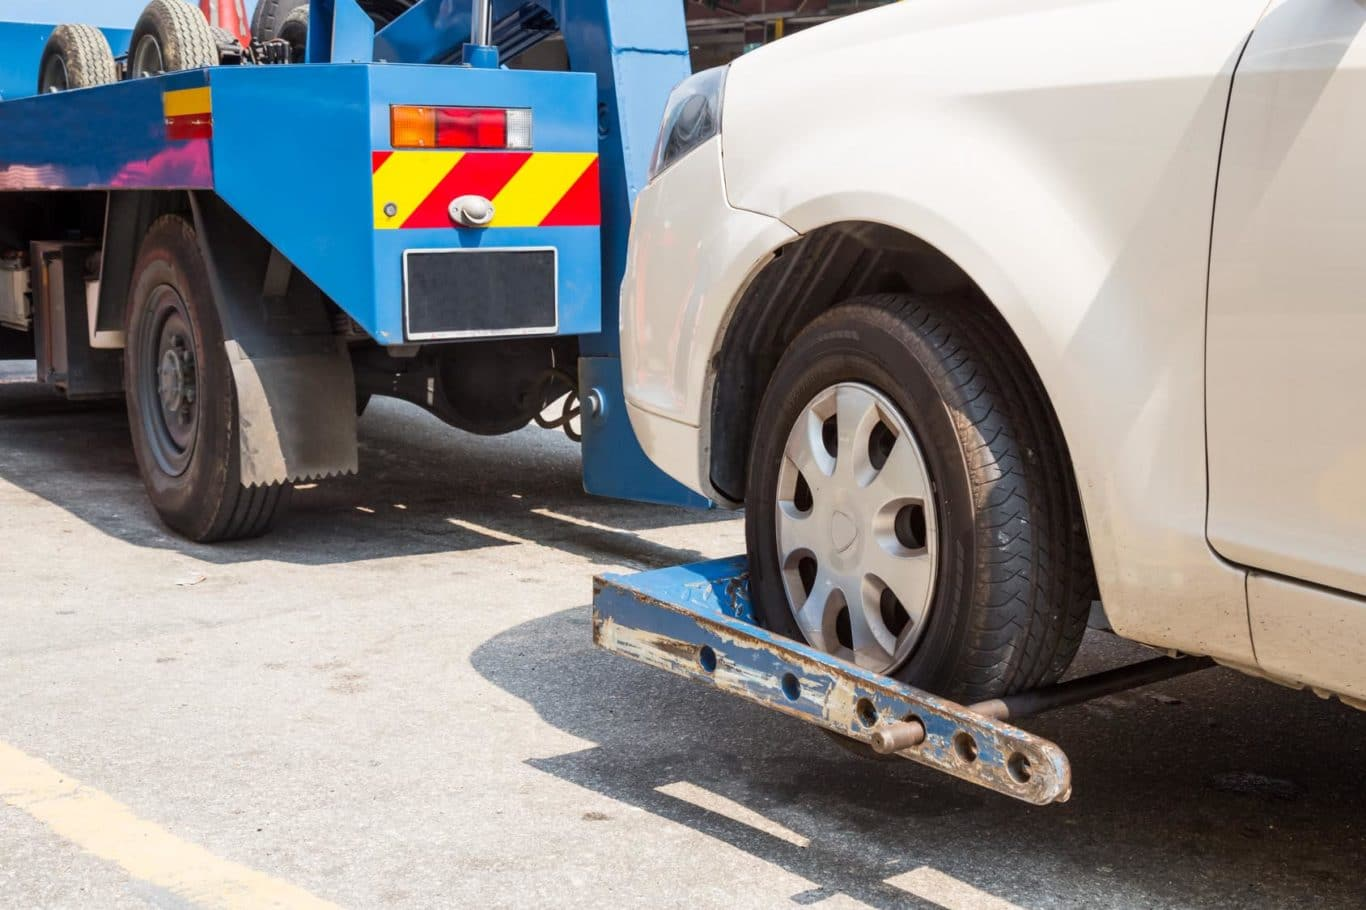 Lullymore expert Car Towing services